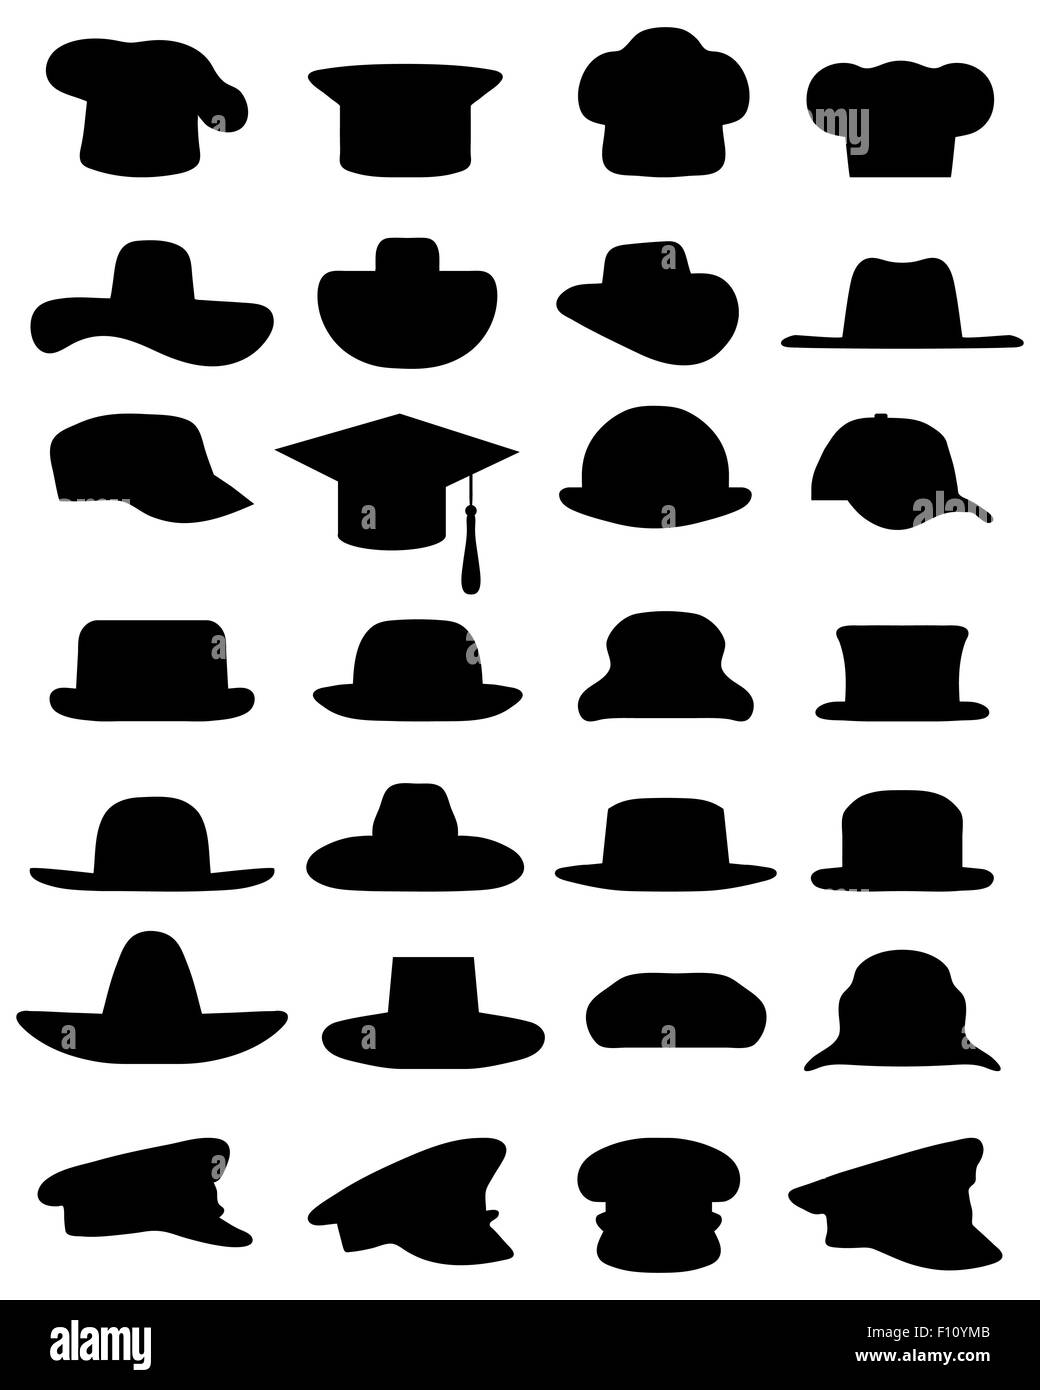 Black silhouettes of various caps and hats, vector - Stock Image